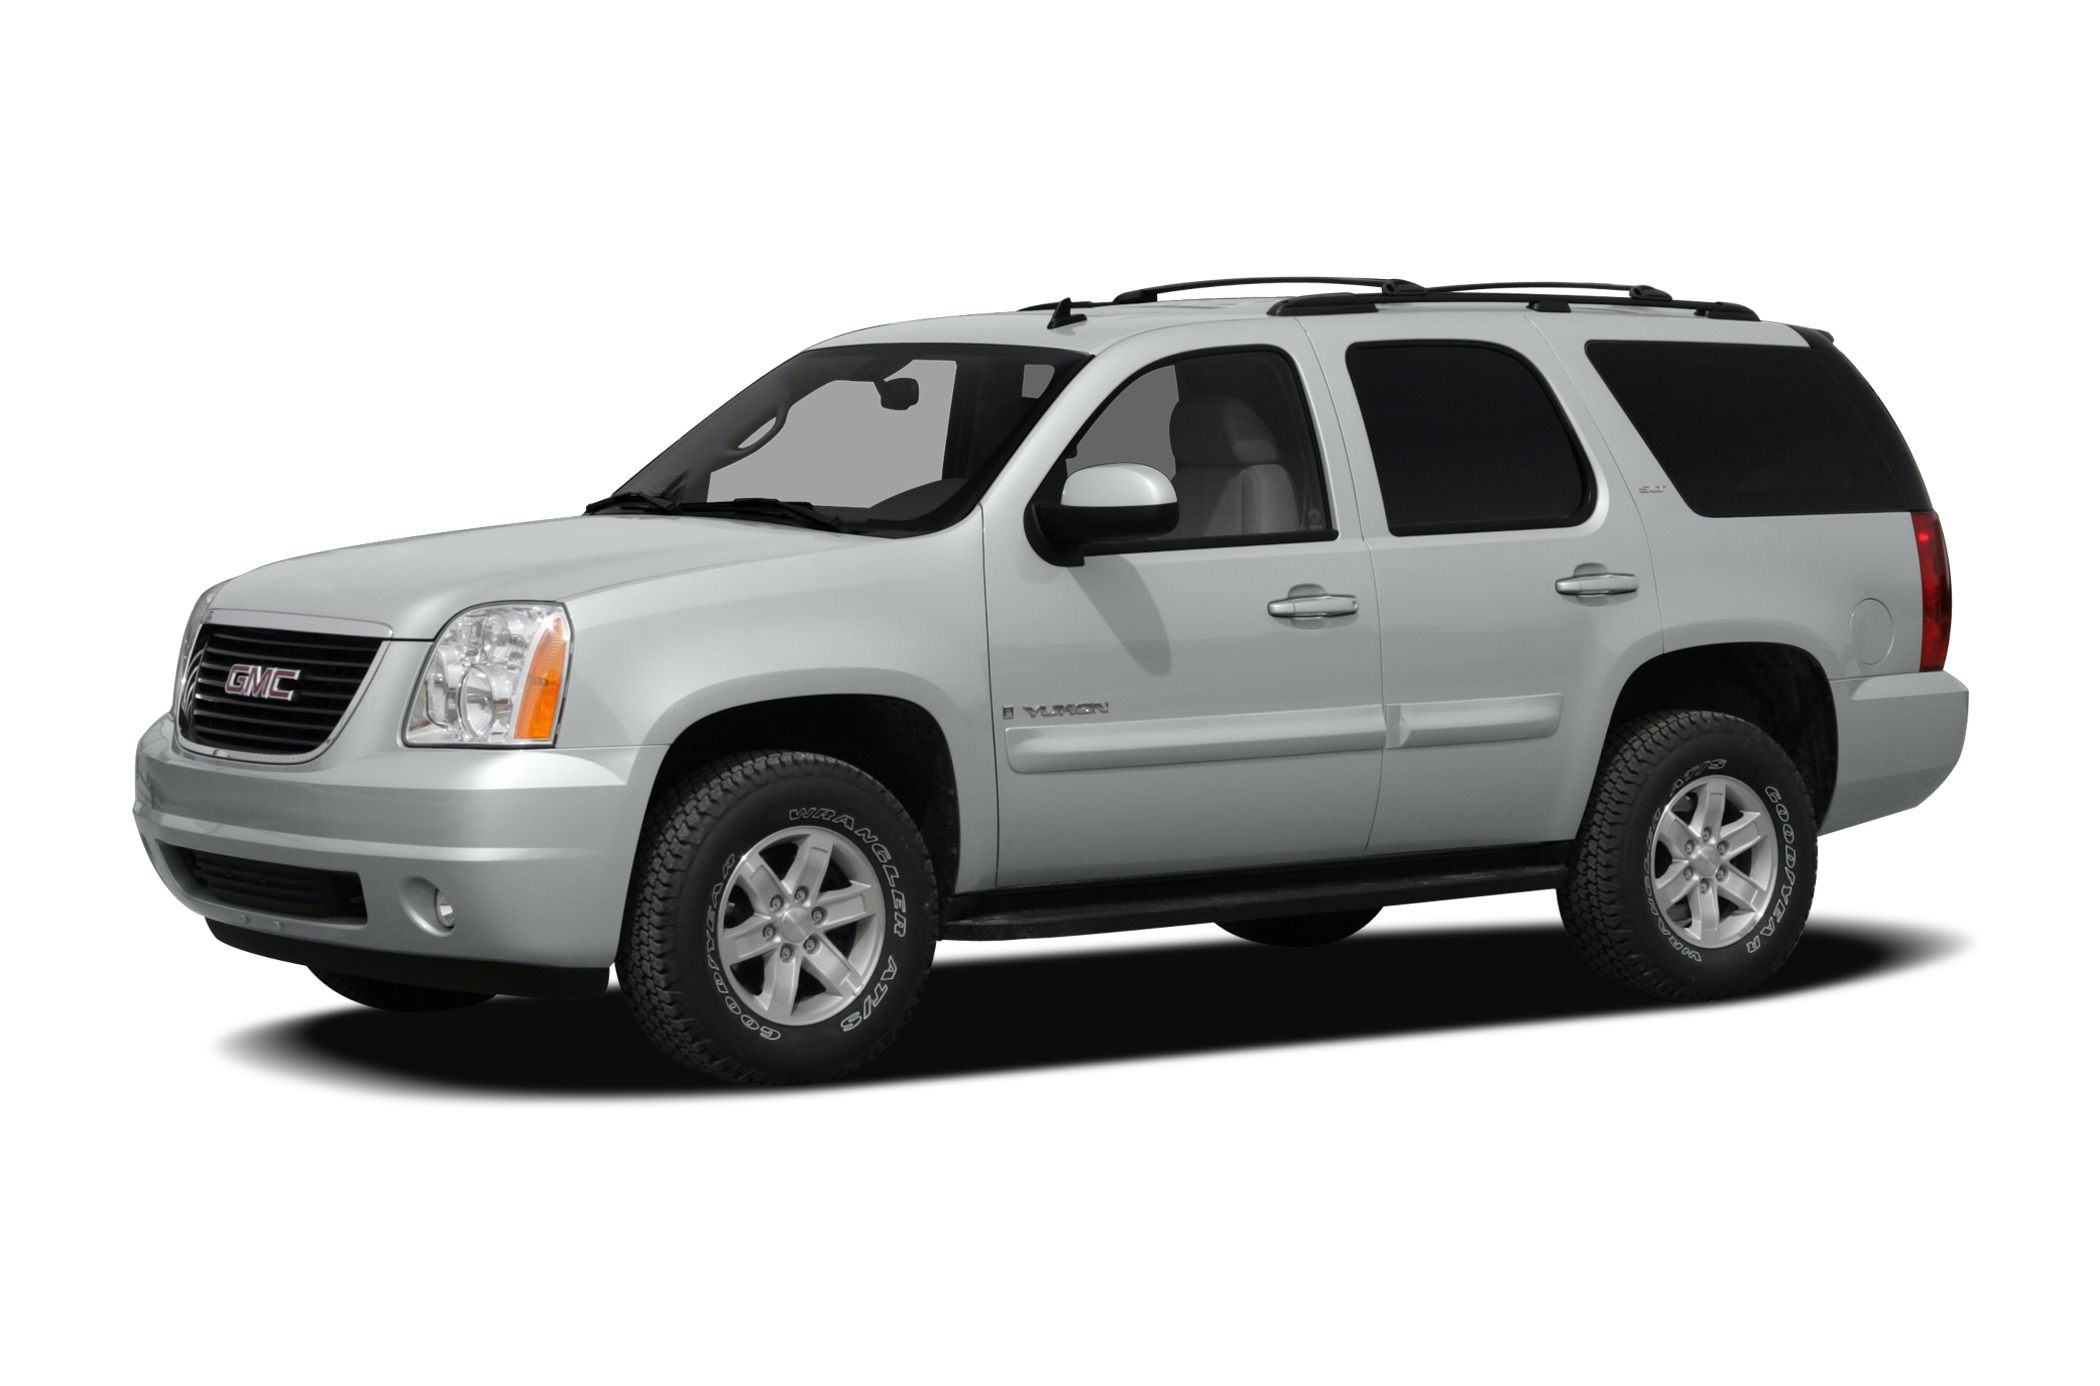 2012 GMC Yukon SLT ITS OUR 50TH ANNIVERSARY HERE AT MARTYS AND TO CELEBRATE WERE OFFERING THE MO